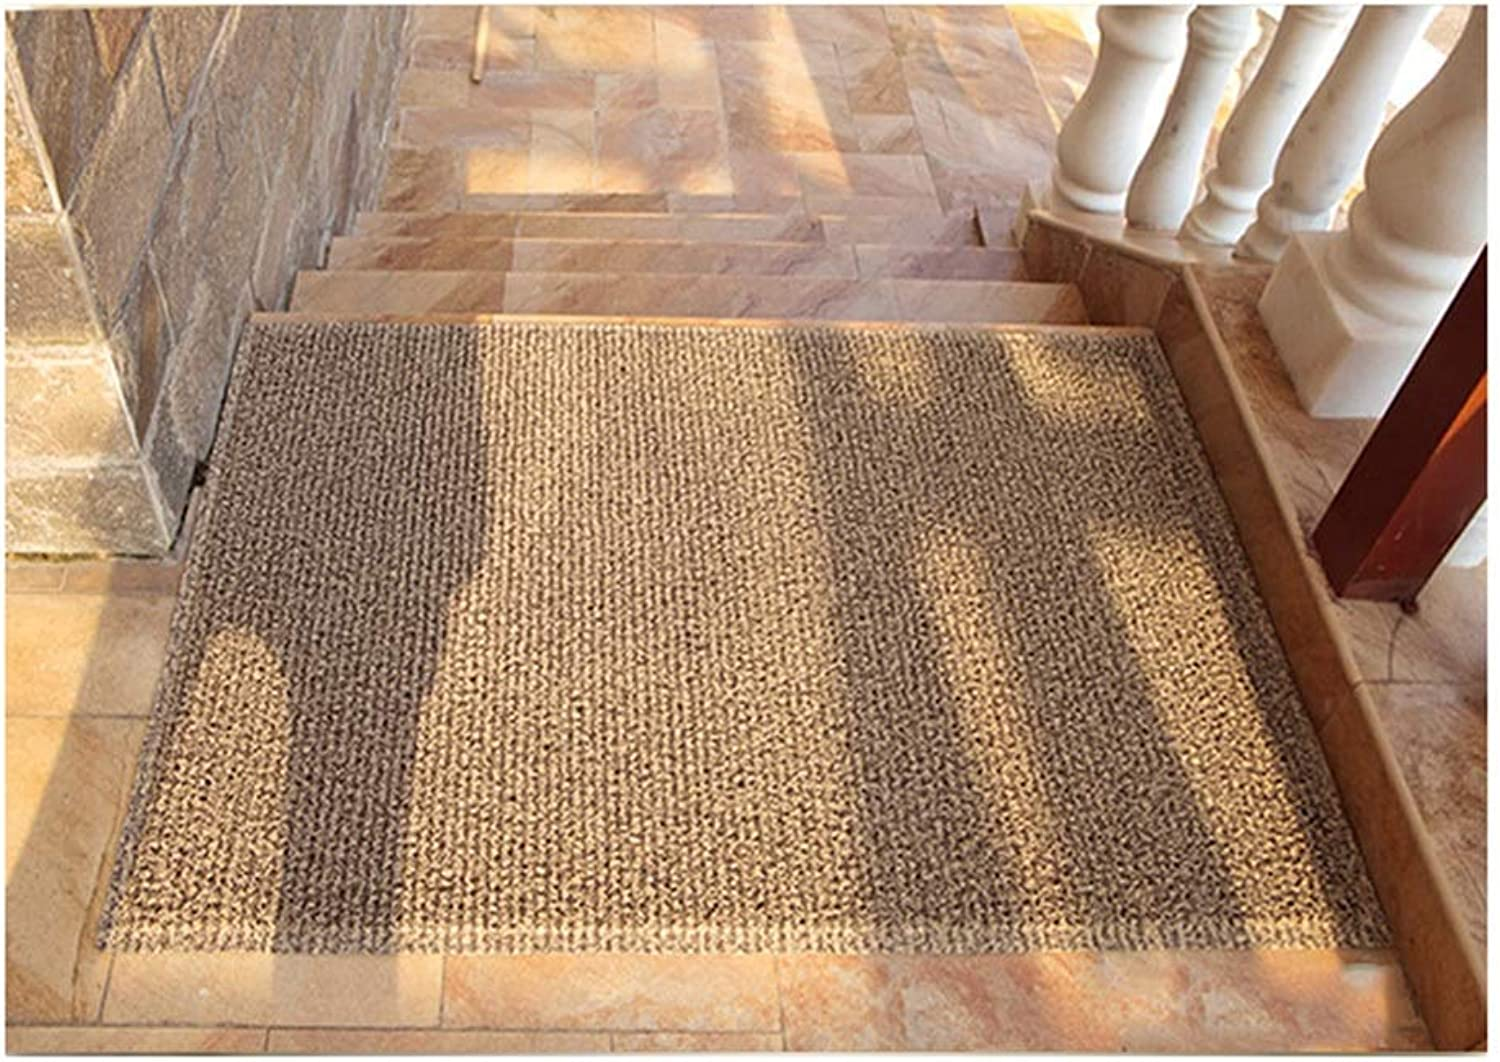 JIAJUAN Front Doormat Entrance Durable Washable Non Slip Dirt Trapper Floor Mat Indoor Outdoor, 8mm, 3 Colours, 4 Sizes (color   Brown, Size   60X120cm)